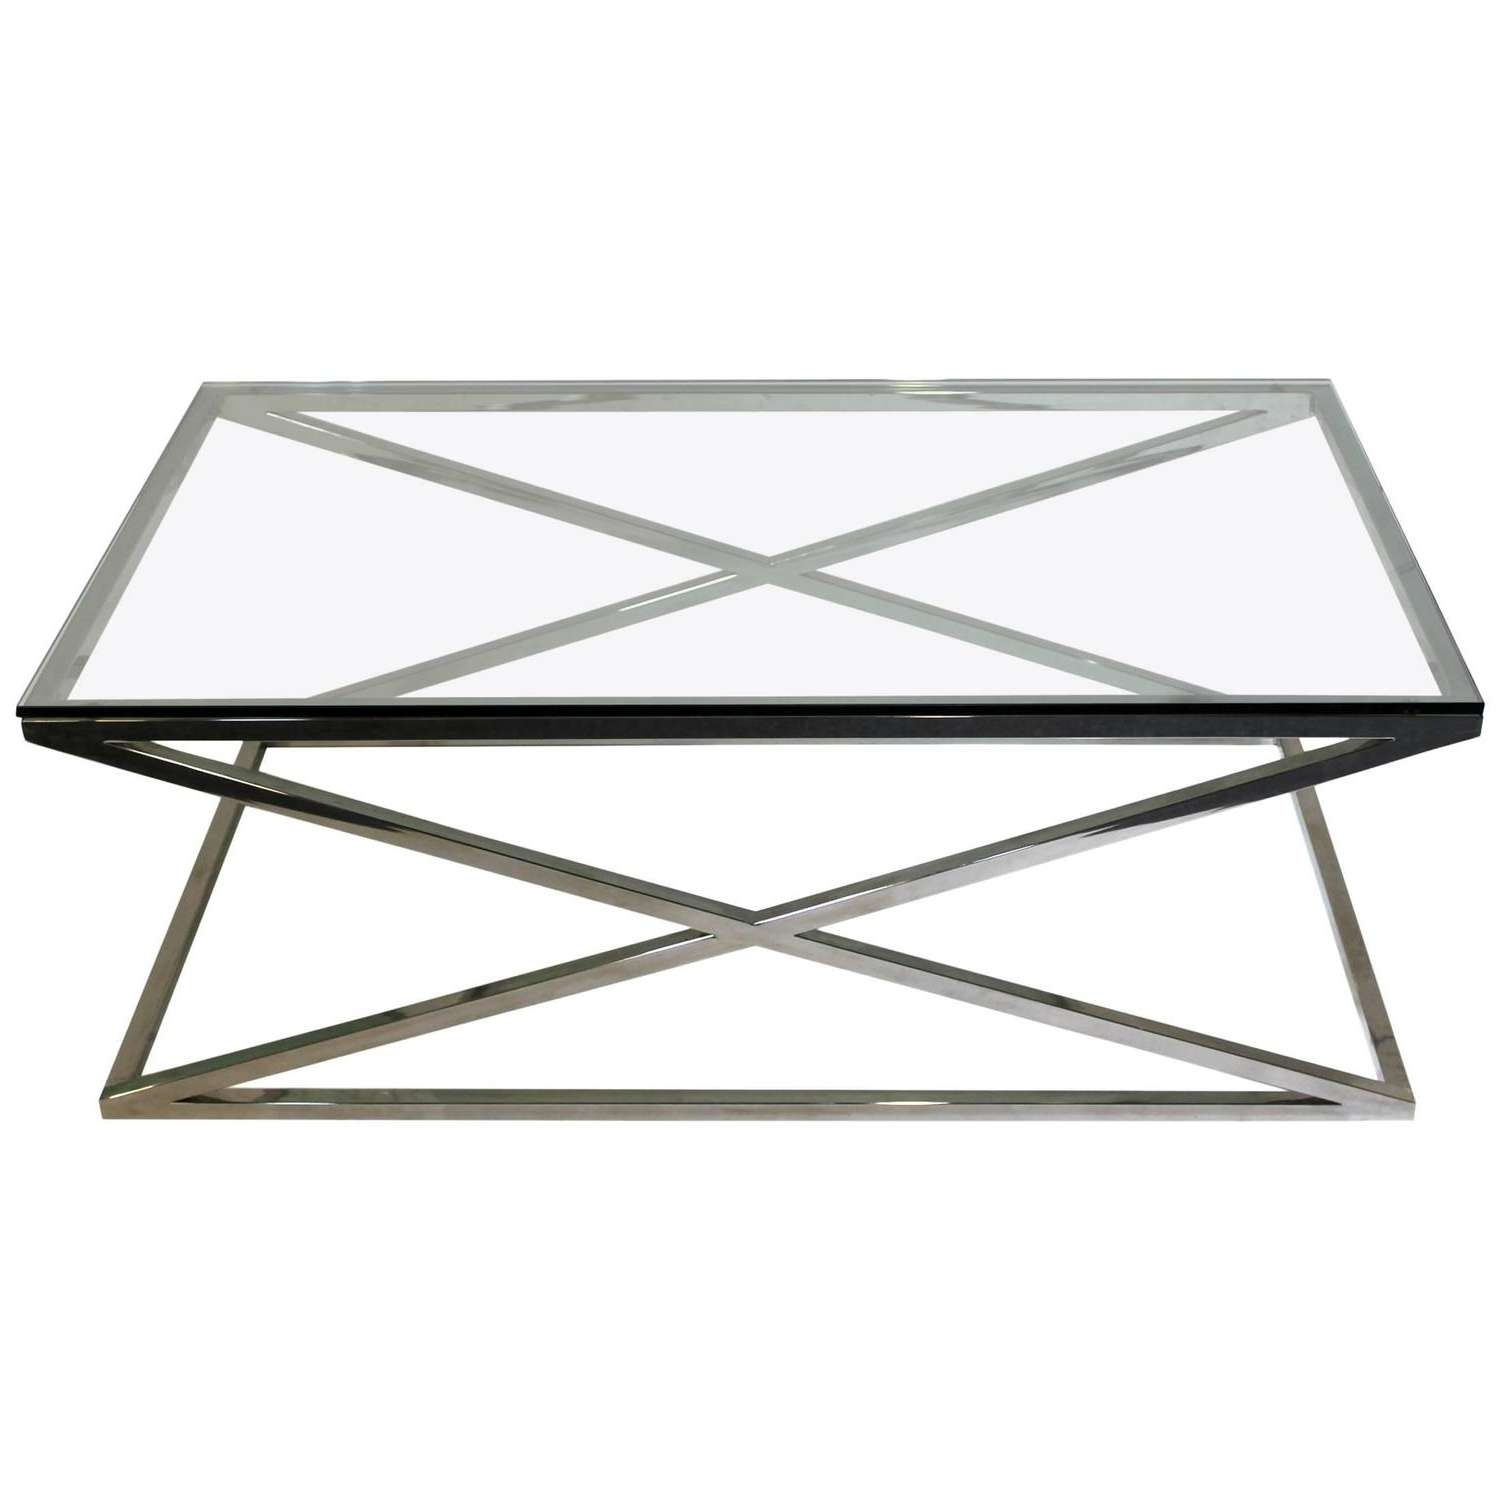 Mid Century Modern Rectangular Glass Coffee Table Chrome X Base At Pertaining To Well Liked Chrome And Glass Coffee Tables (View 6 of 20)